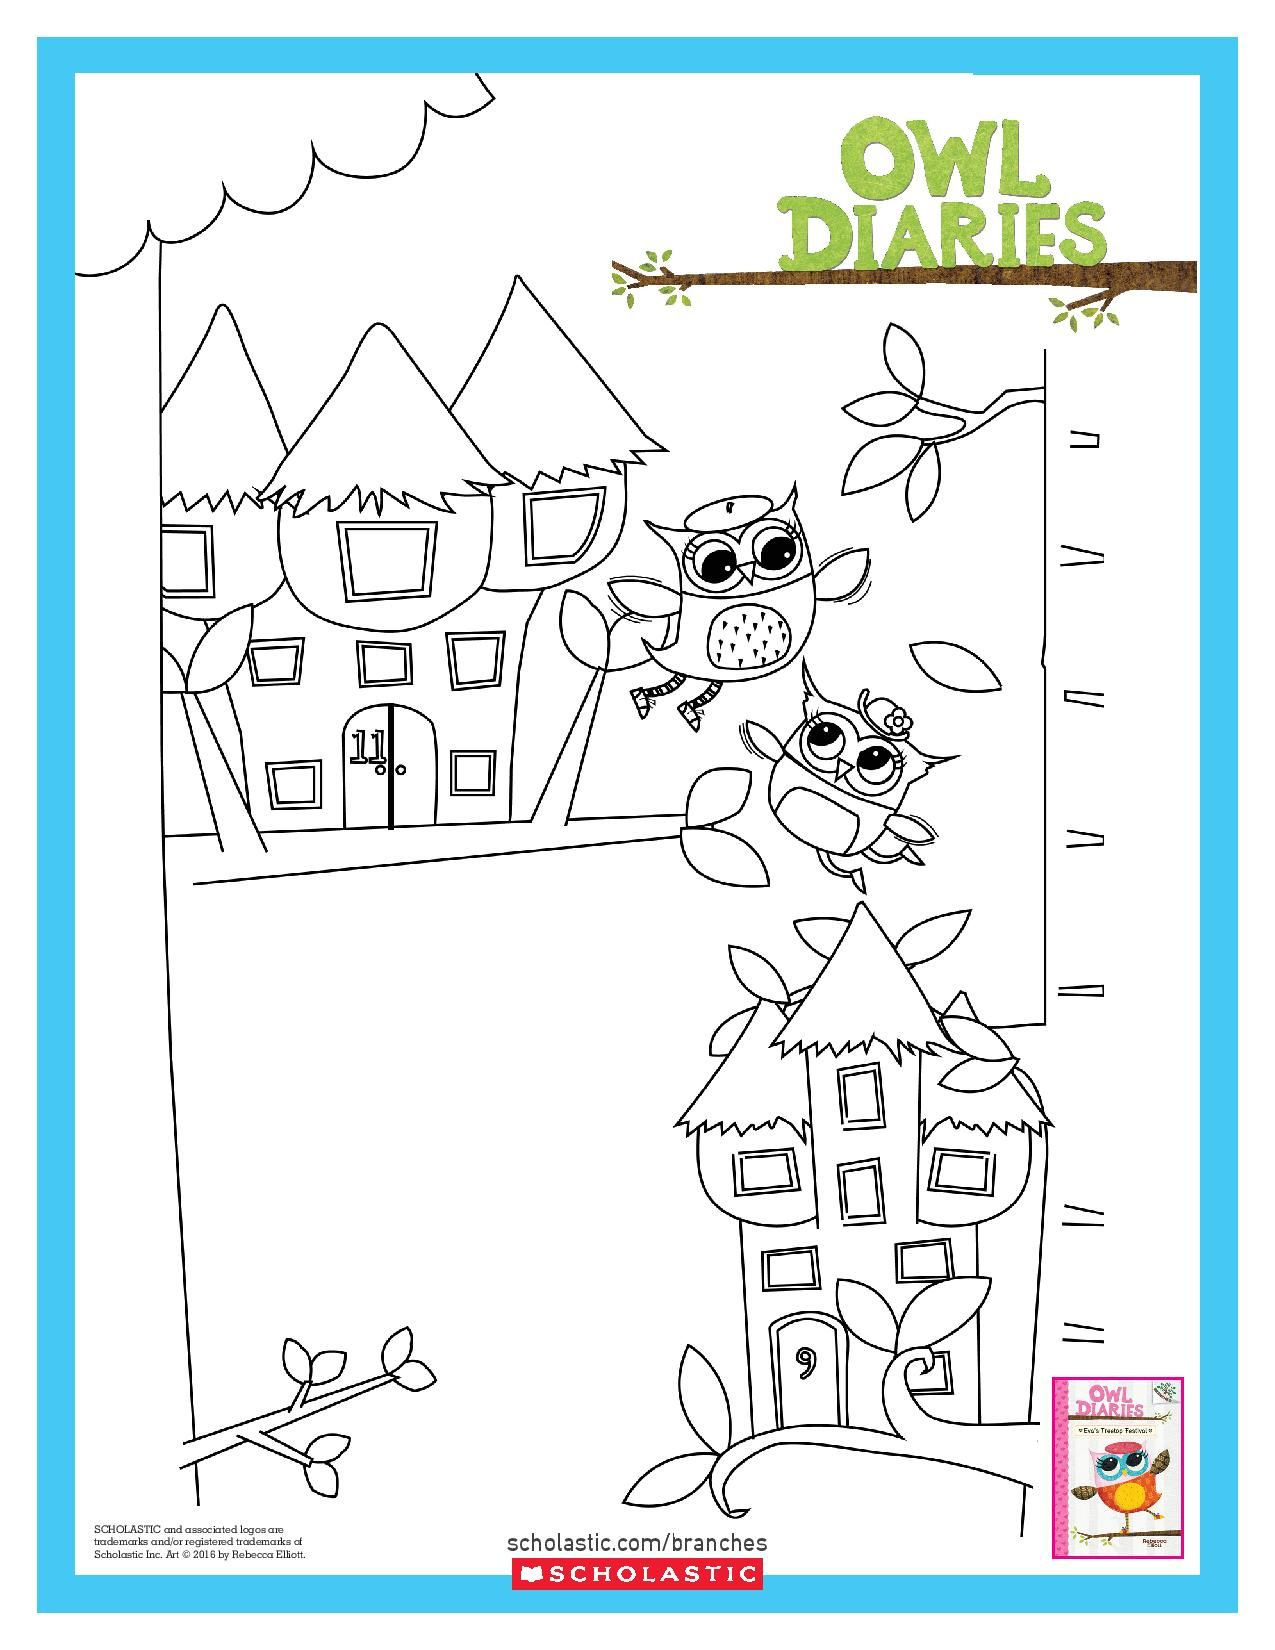 color eva and her treetop home in this scholasticbranches coloring sheet for owl diaries